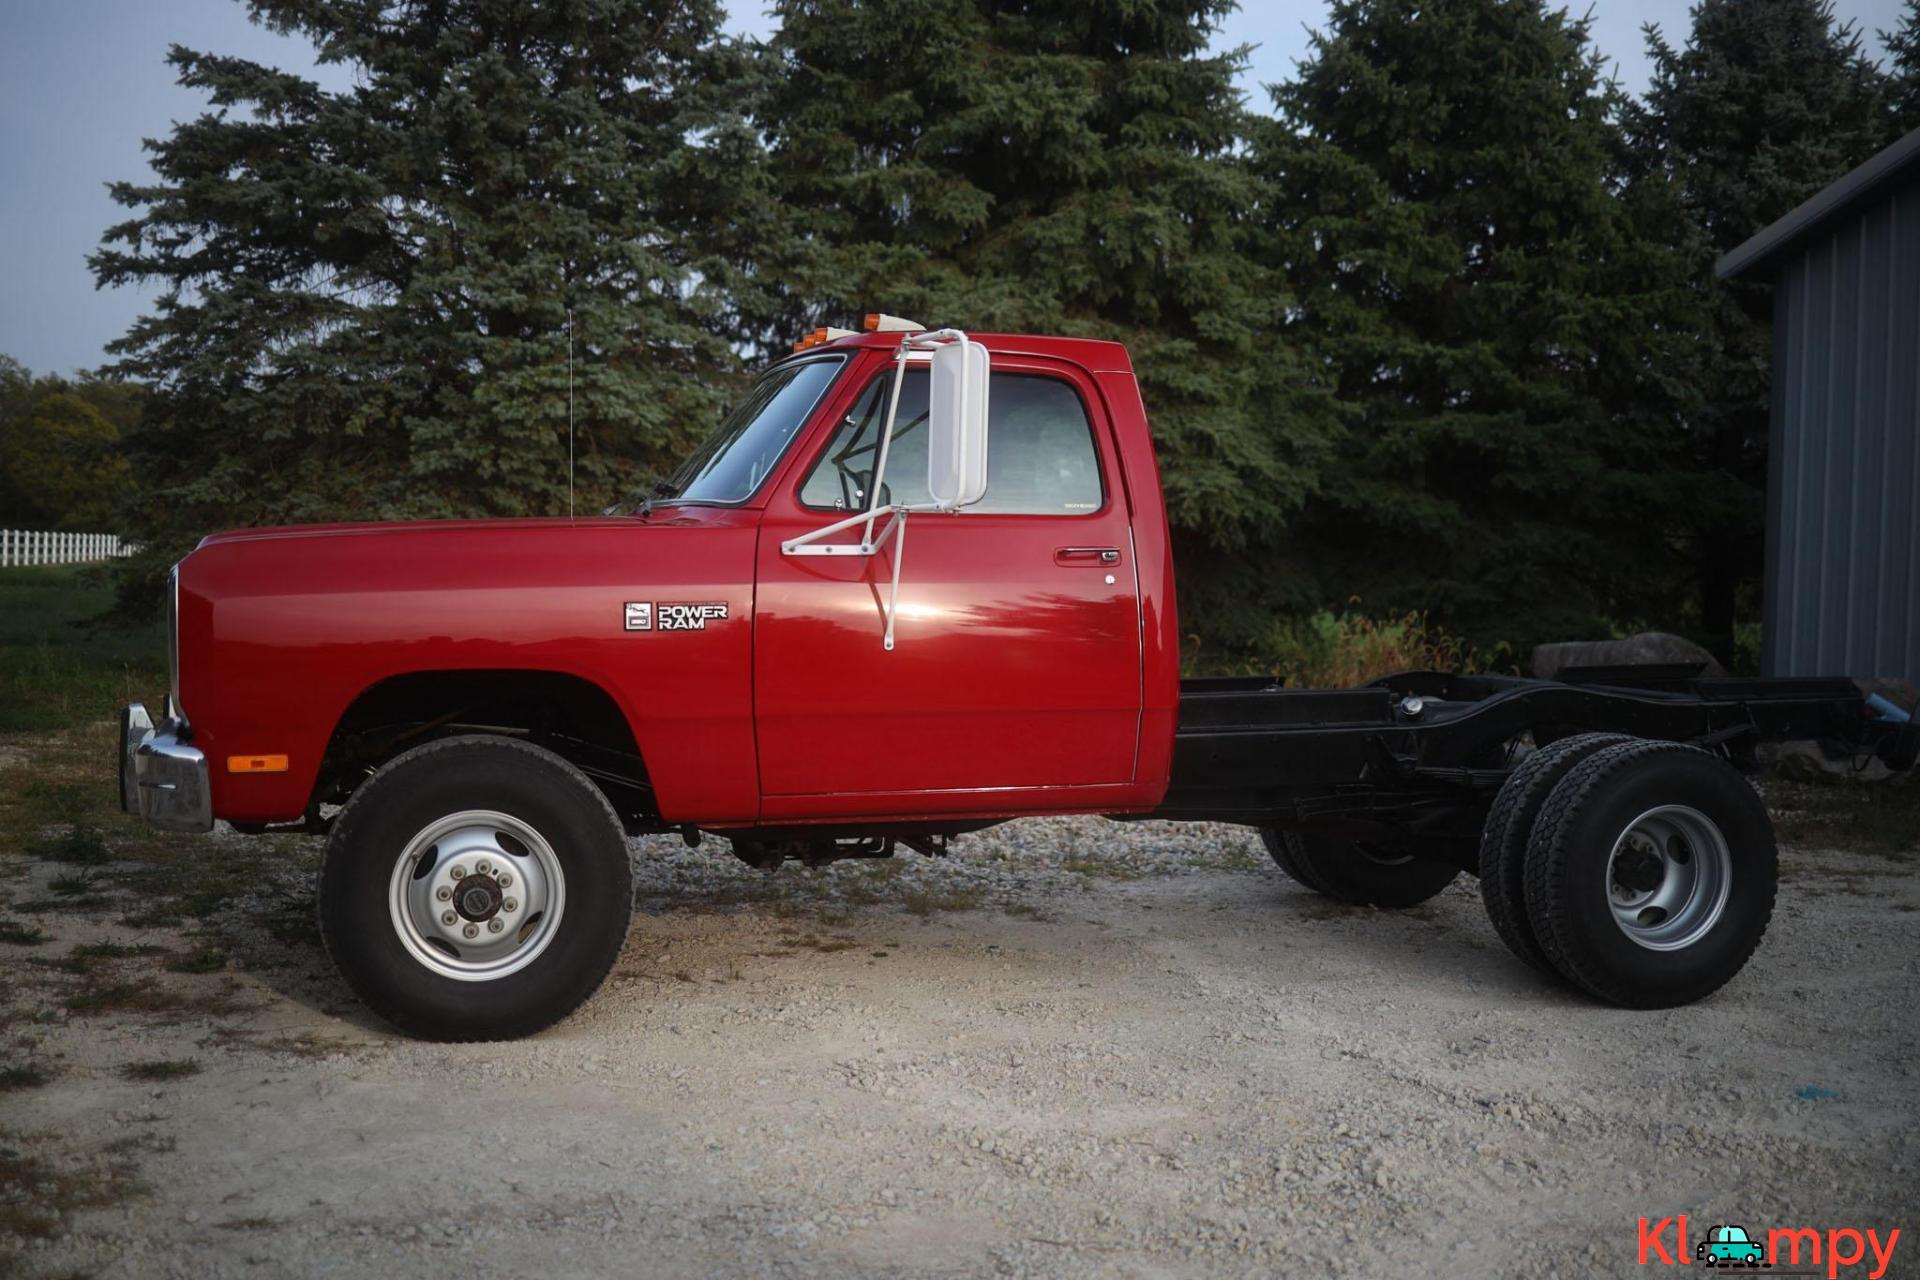 1989 Dodge Power Ram W350 4×4 Truck - 2/20